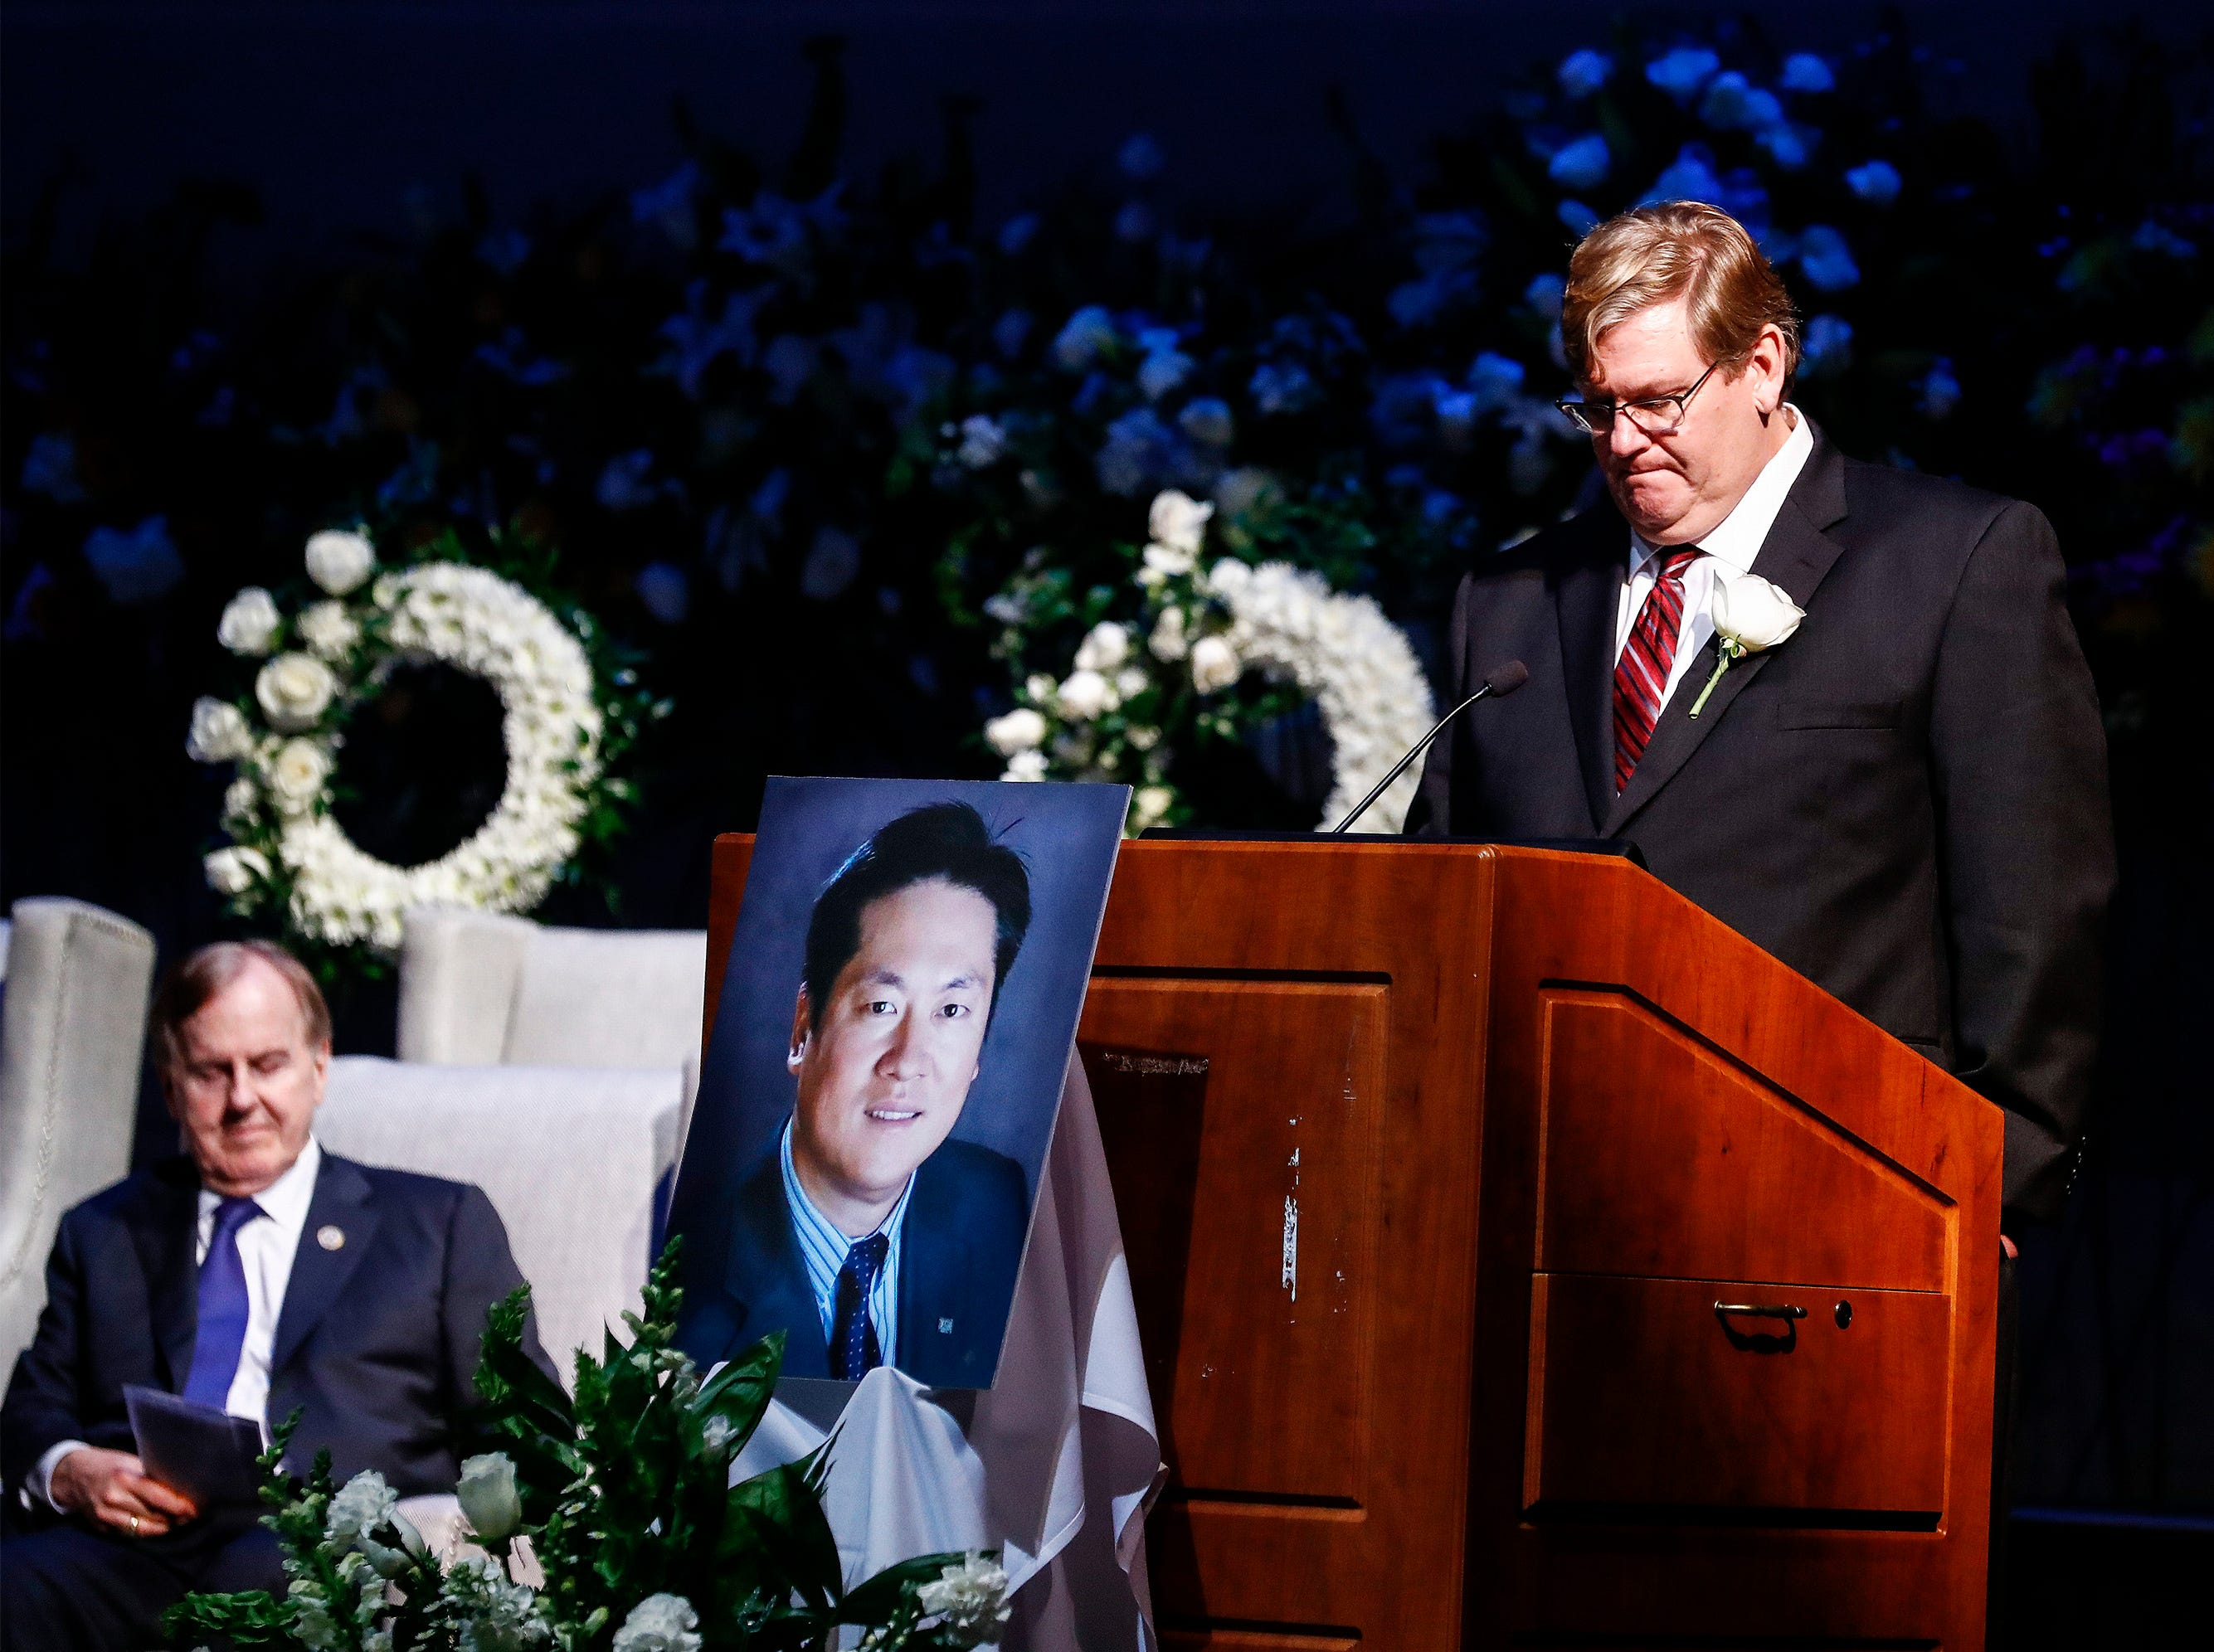 Mike McAnnally speaks during a memorial service for Wei Chen, a Memphis businessman who died along with three other people in a plane crash in Georgia. McAnnally, now heads Chen's company Sunshine Enterprise Inc., and is the only surviving executive. Company executives John Chen, Bruce Pelynio and Danielle Mitchell also died in the crash with Chen